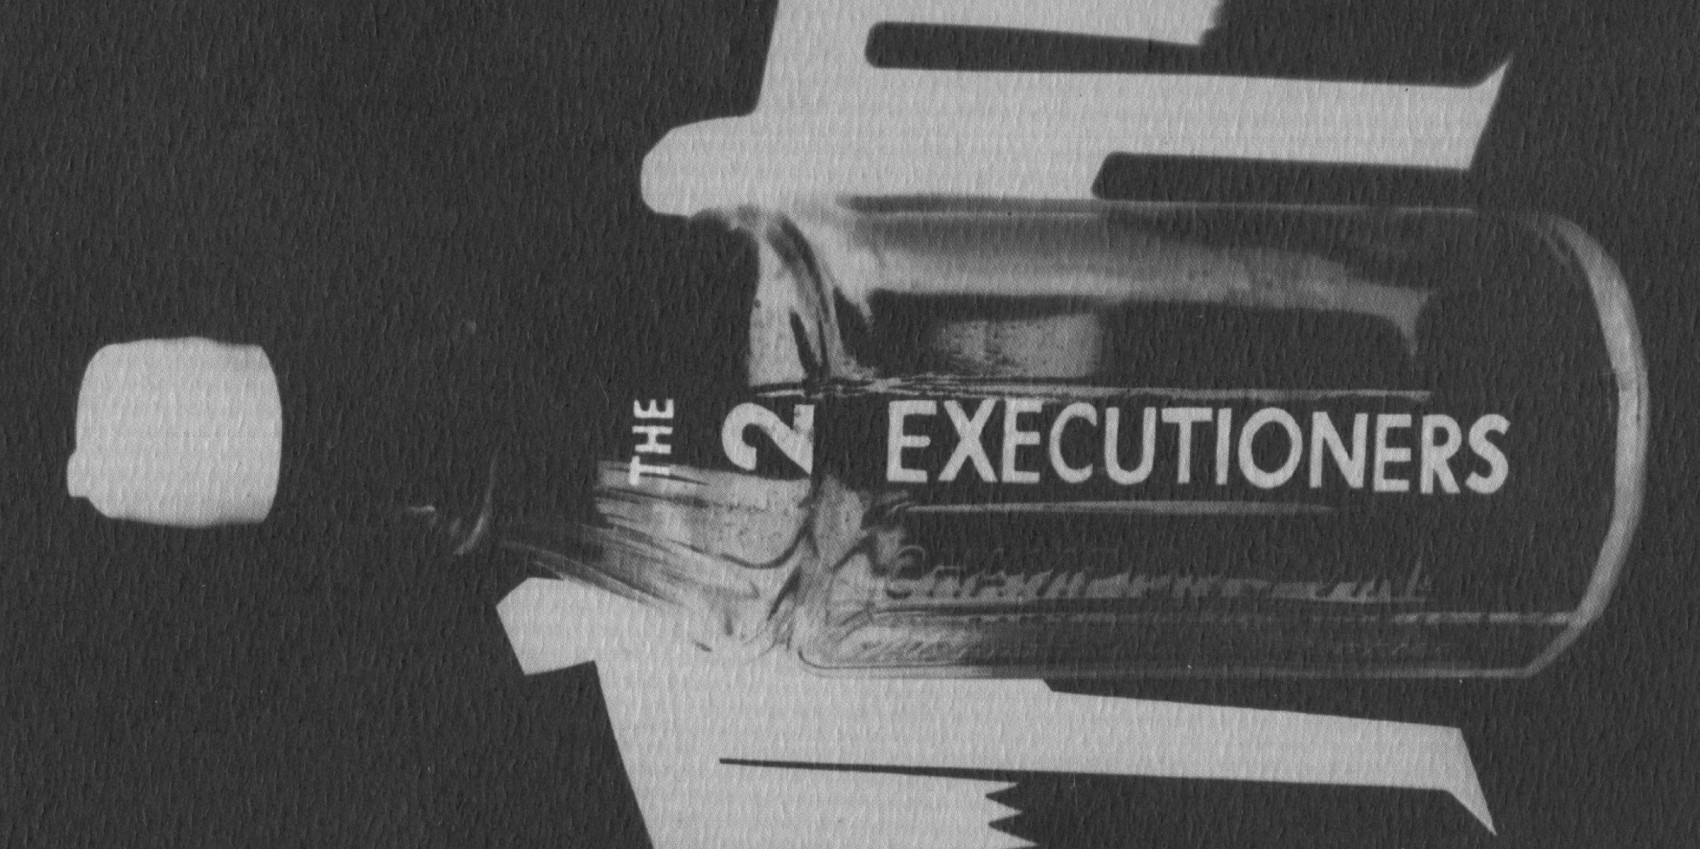 Promo image: a bottle on its side with the words The 2 Executioners